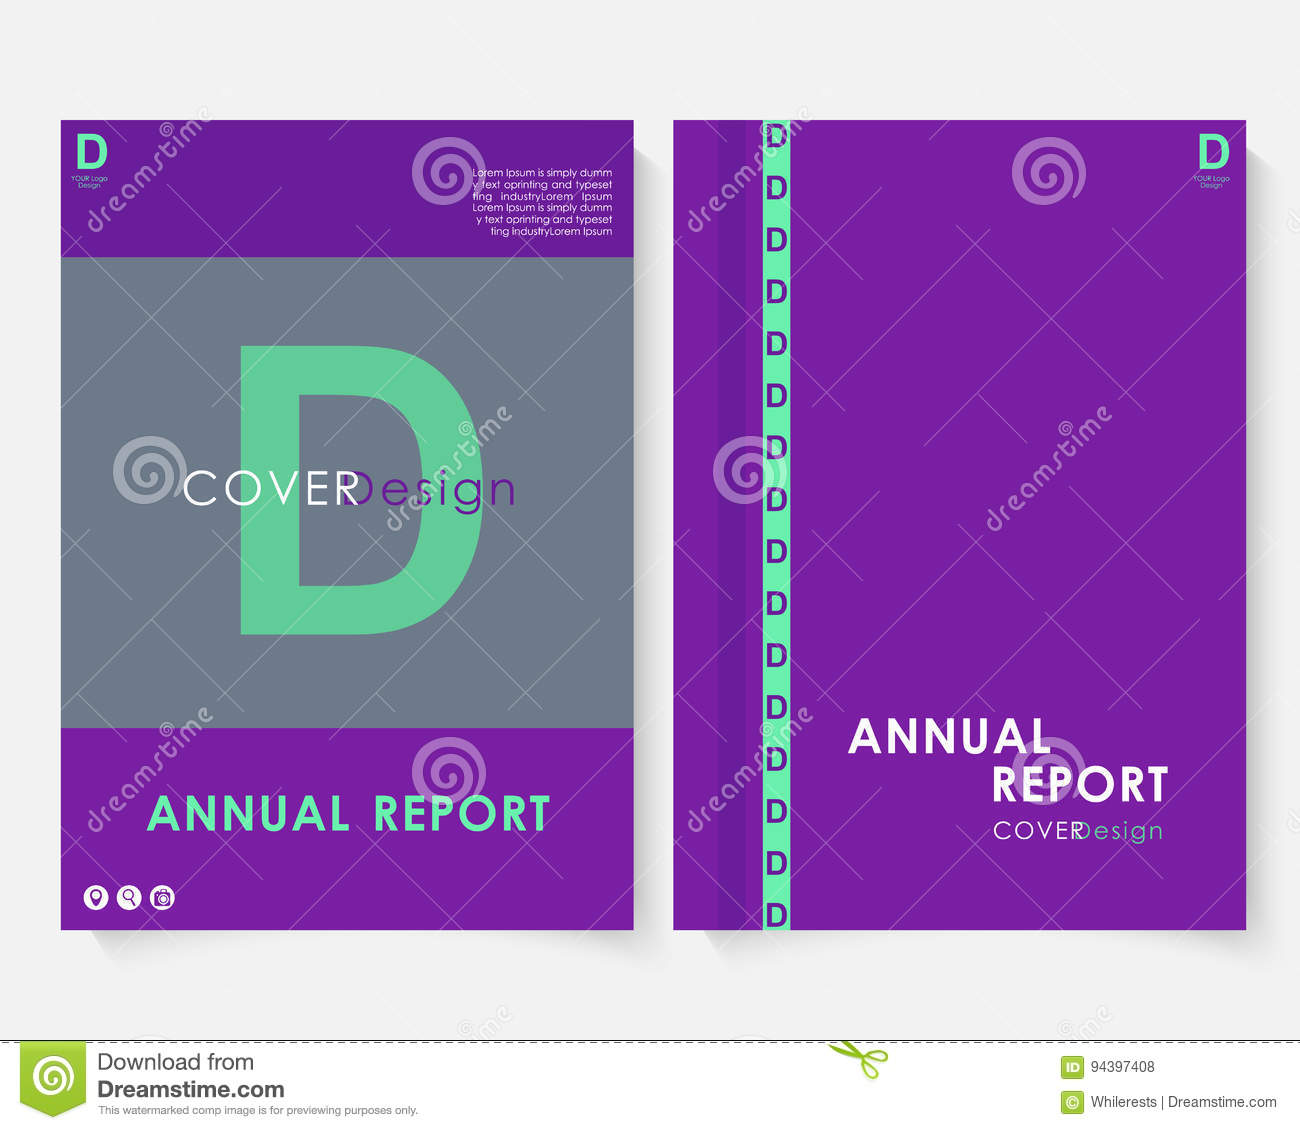 Violet Marketing Cover Design Template For Annual Report Vector Modern Minimalist Business Powerpoint Concept Booklet